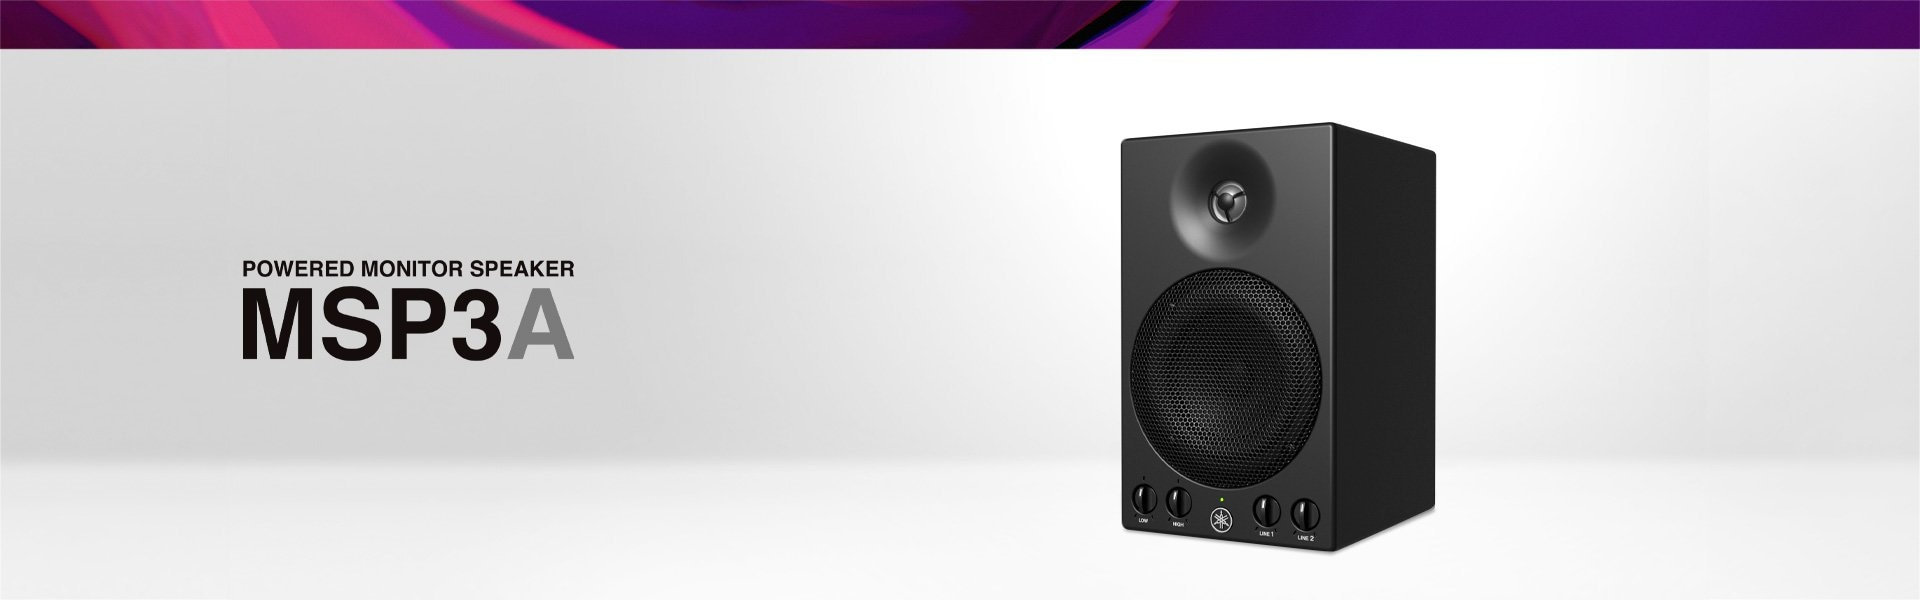 Yamaha Powered Monitor Speaker MSP3A